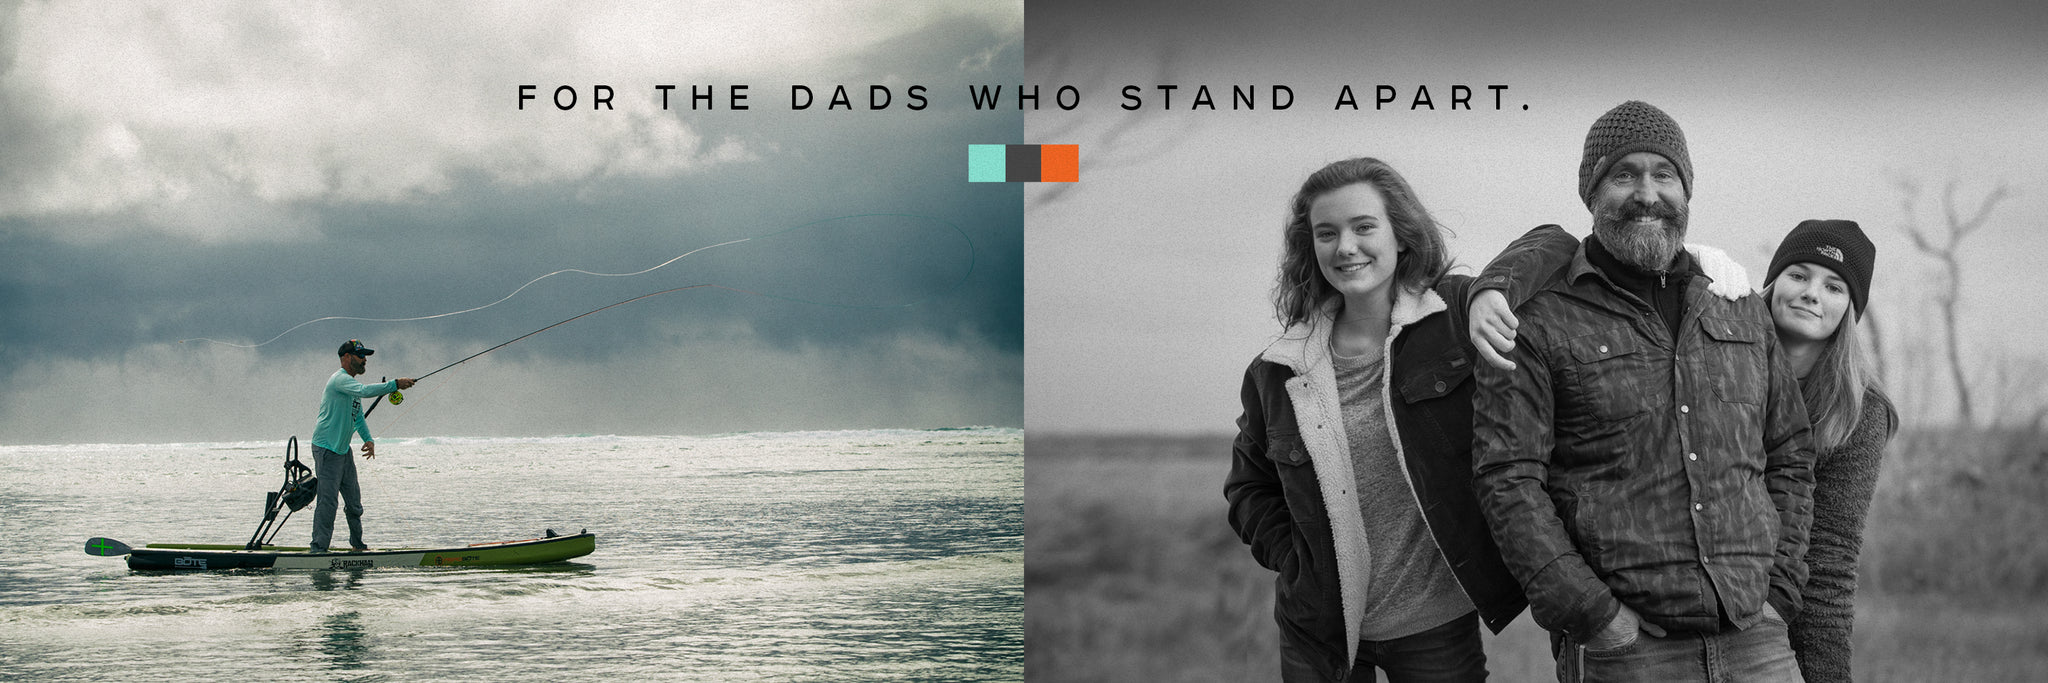 For Dads Who Stand Apart